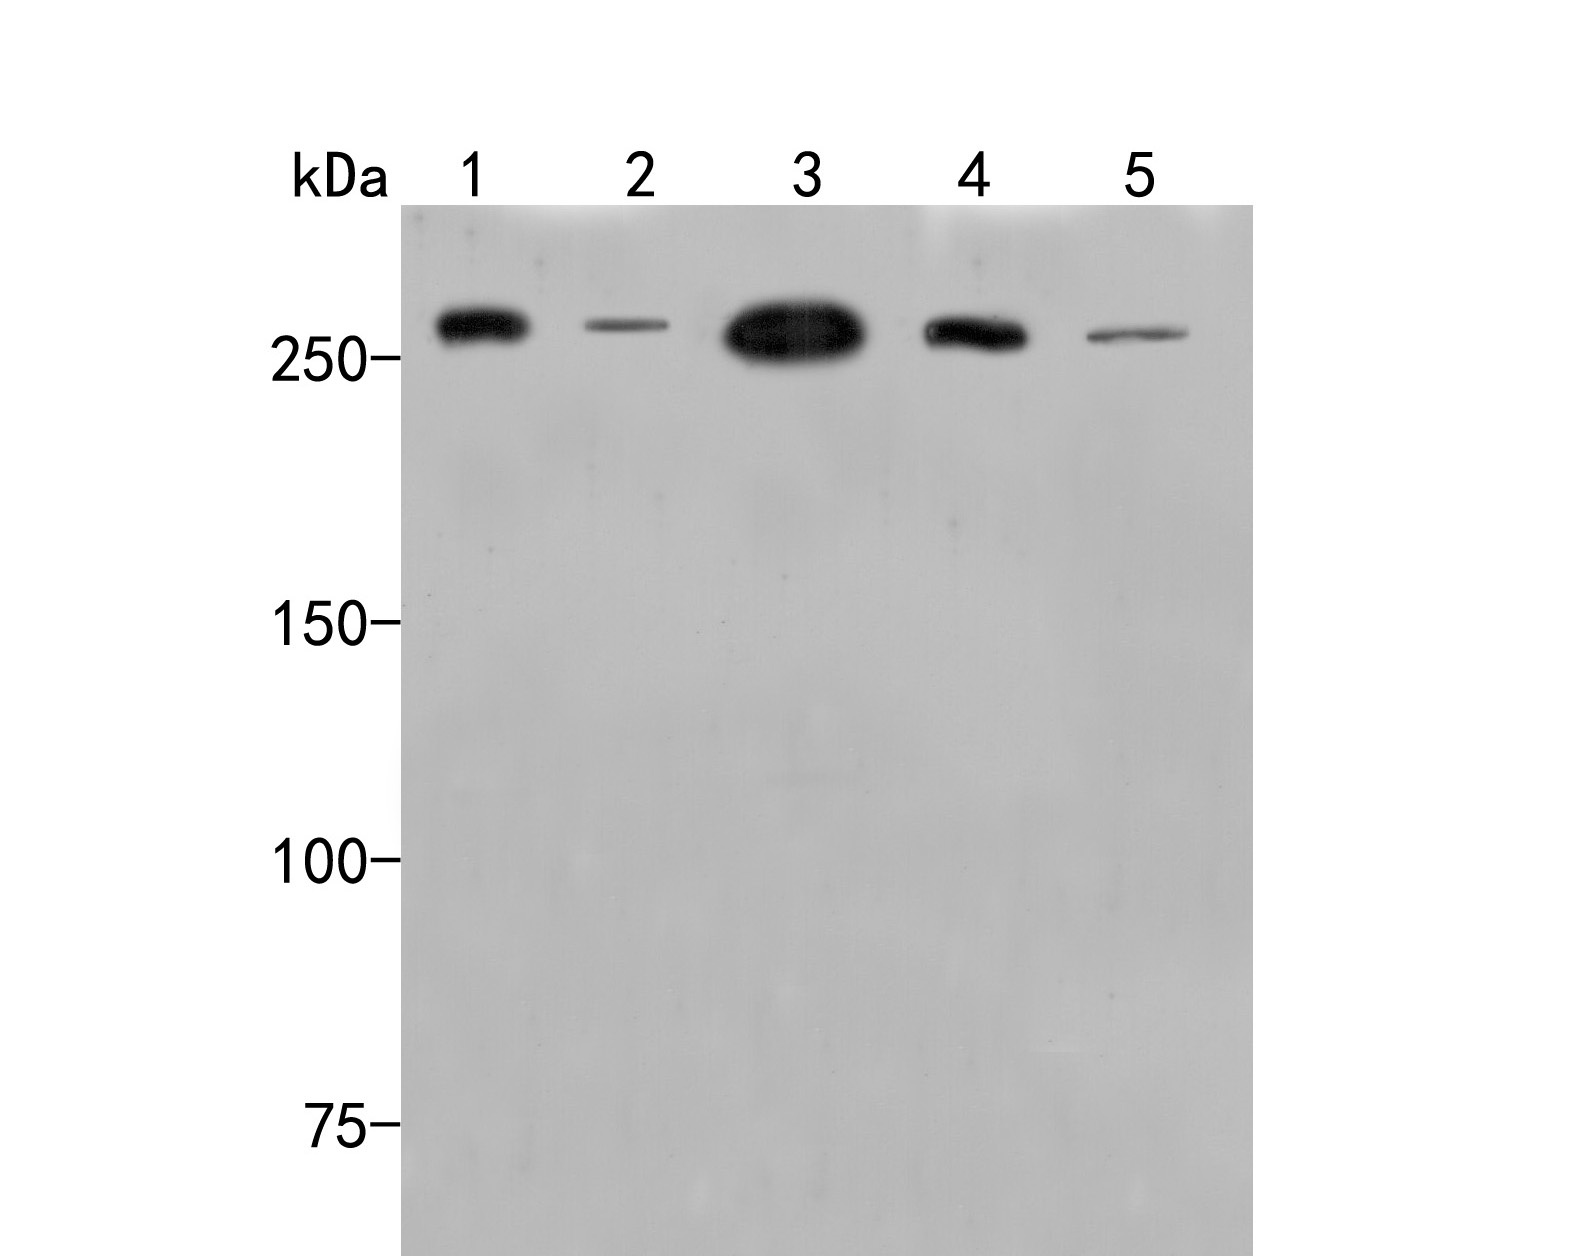 Western blot analysis of SPTBN1 on different lysates. Proteins were transferred to a PVDF membrane and blocked with 5% BSA in PBS for 1 hour at room temperature. The primary antibody (HA500014, 1/500) was used in 5% BSA at room temperature for 2 hours. Goat Anti-Rabbit IgG - HRP Secondary Antibody (HA1001) at 1:5,000 dilution was used for 1 hour at room temperature.<br /> Positive control: <br /> Lane 1: SW1990 cell lysate<br /> Lane 2: PANC-1 cell lysate<br /> Lane 3: Rat brain tissue lysate<br /> Lane 4: Mouse brain tissue lysate<br /> Lane 5: Mouse cerebellum tissue lysate